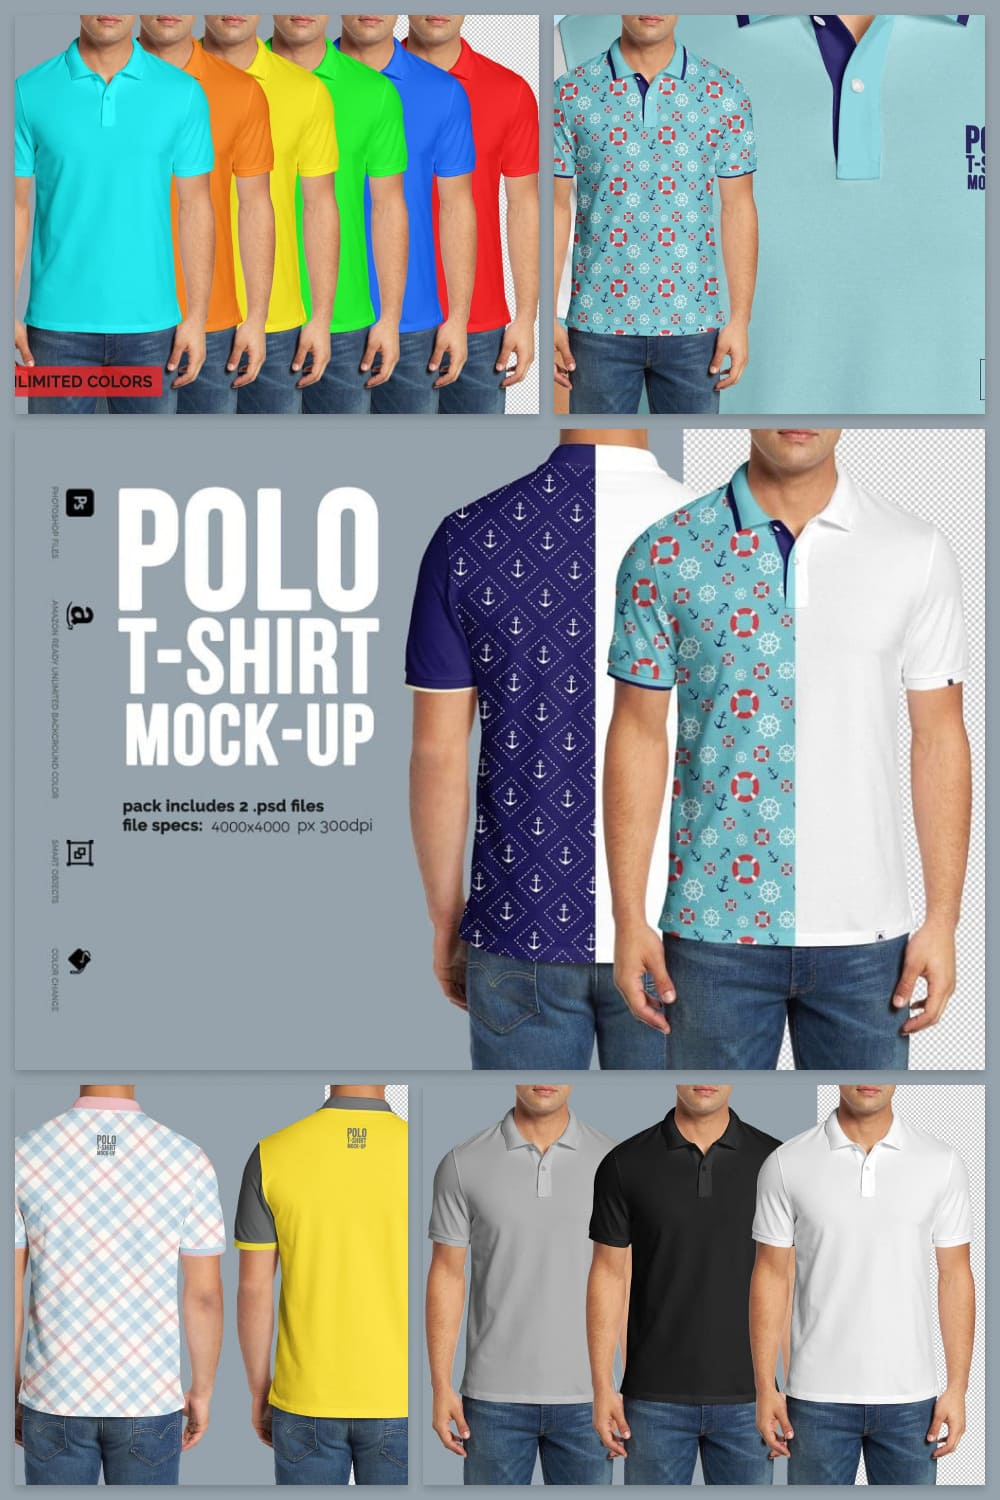 Polo shirts with ornament and without any graphics.